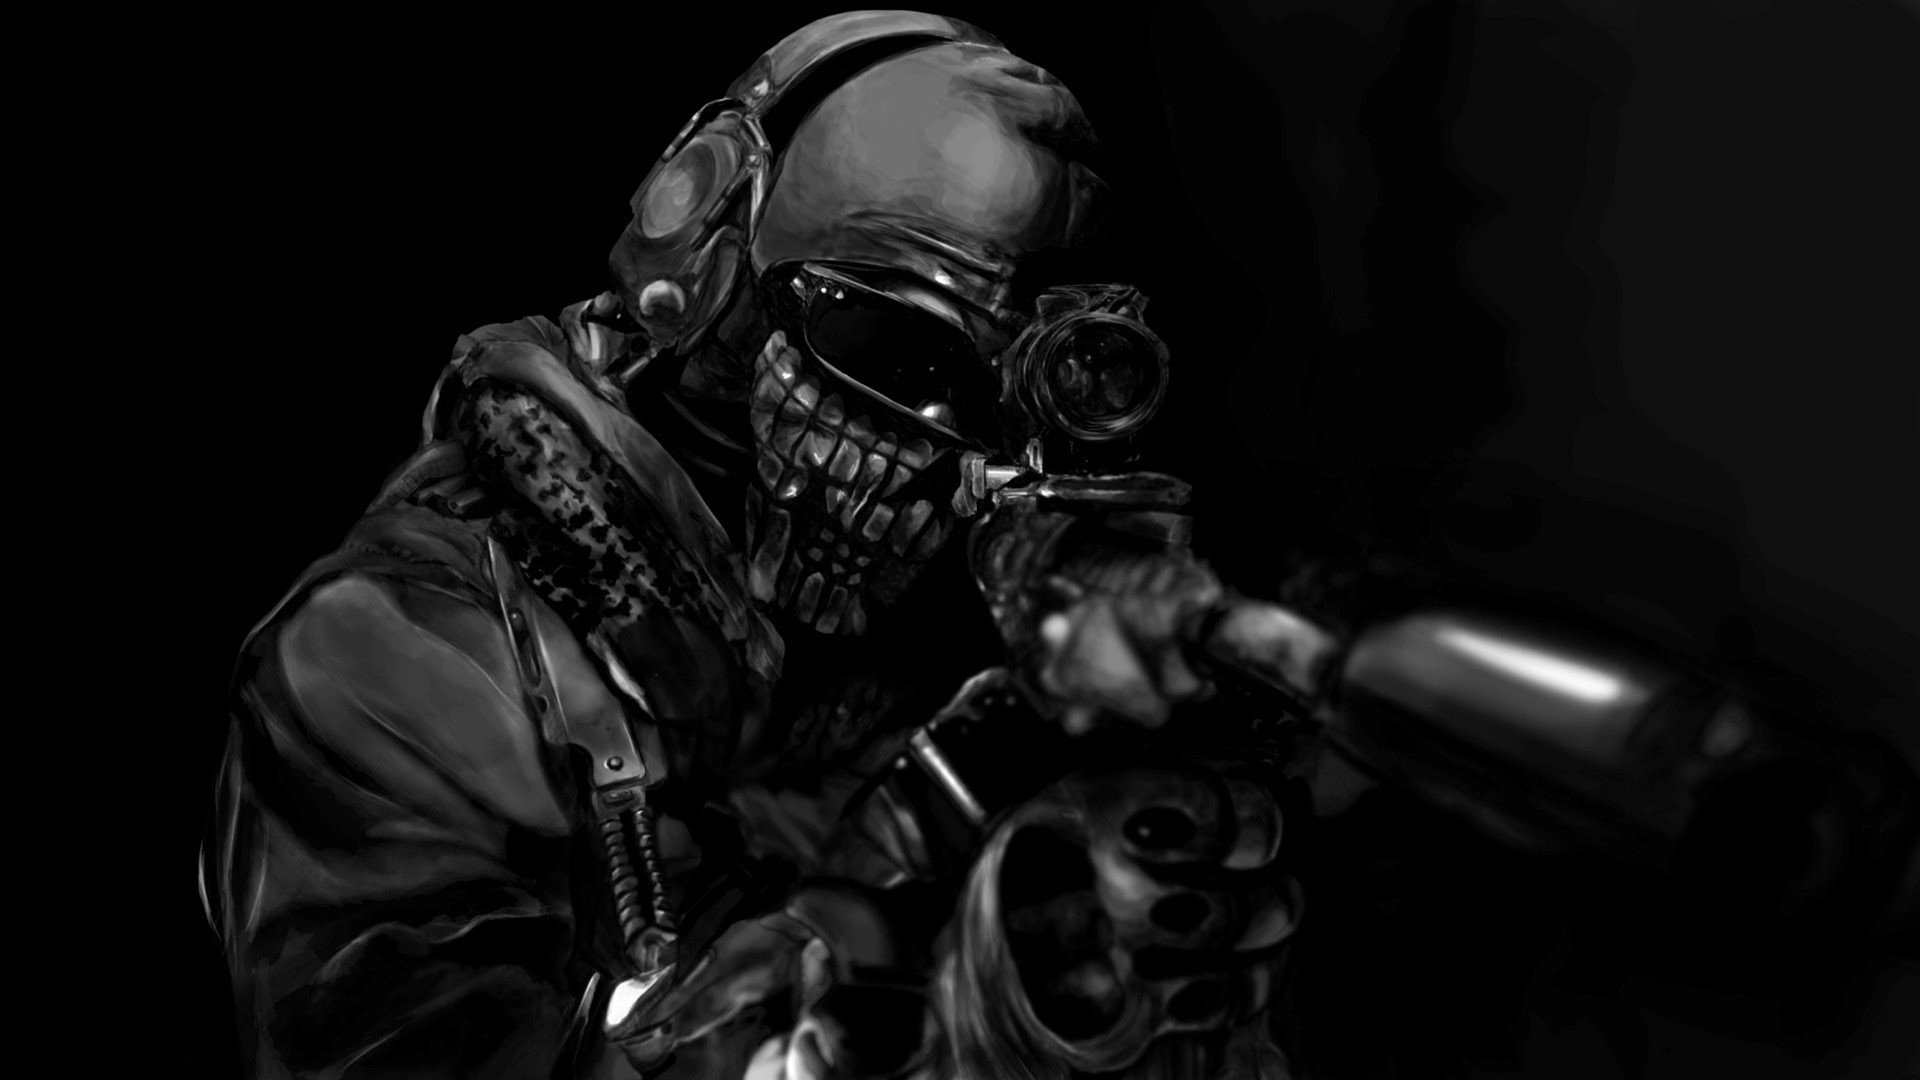 fonds d'écran call de duty ghosts : tous les wallpapers call de duty